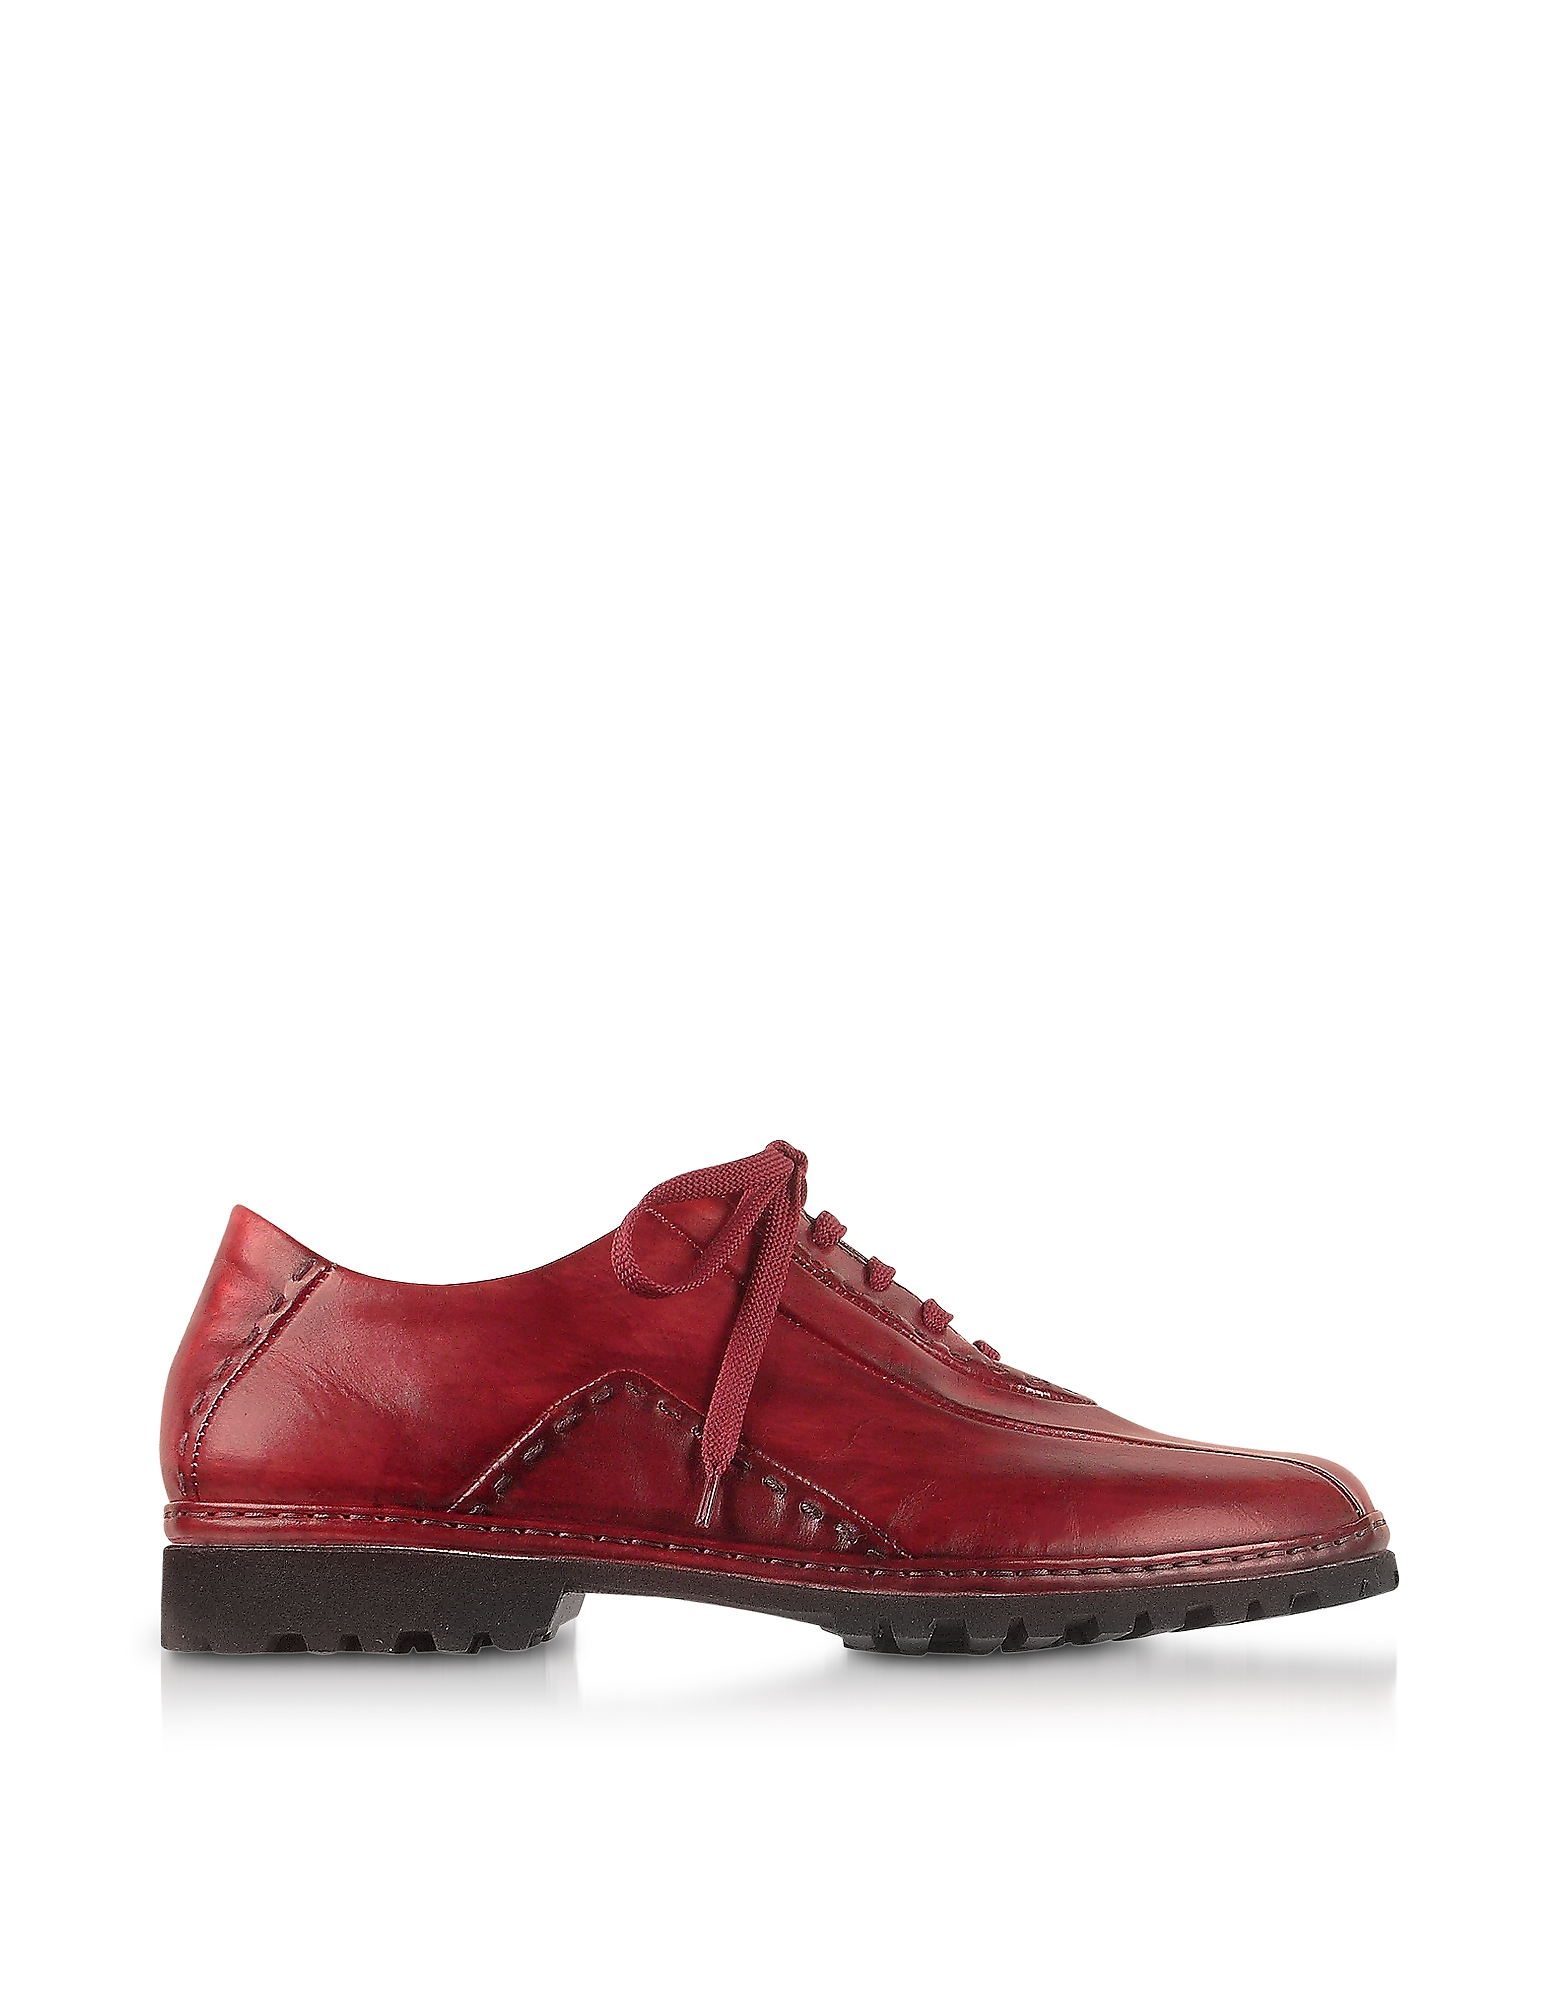 Pakerson Shoes, Red Italian Hand Made Leather Lace-up Shoes